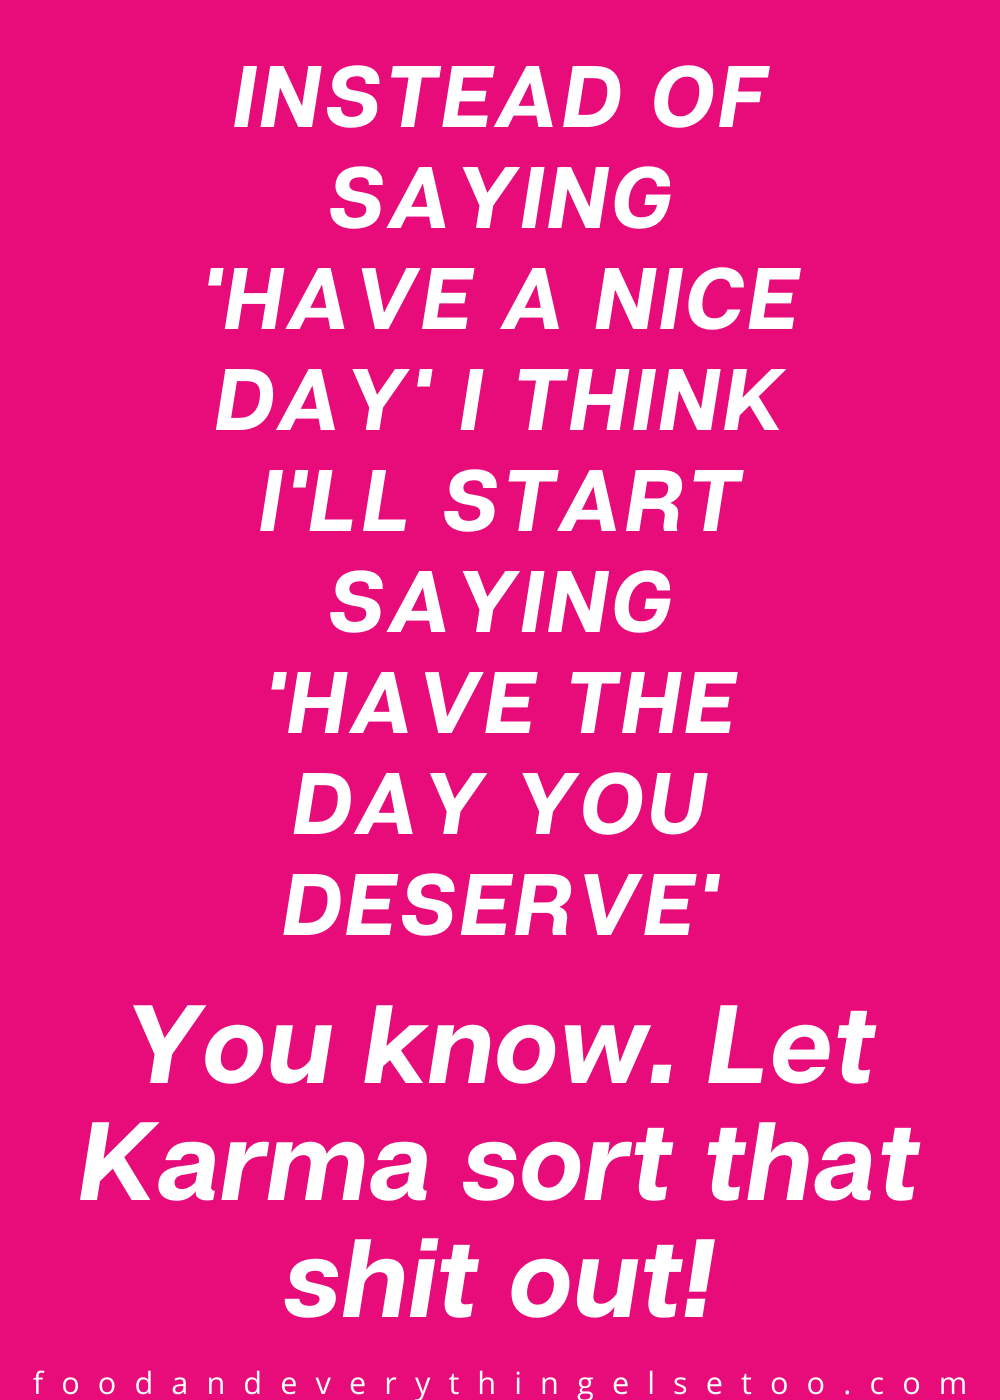 Instead of saying have a nice day say have a day you deserve and let karma work it out